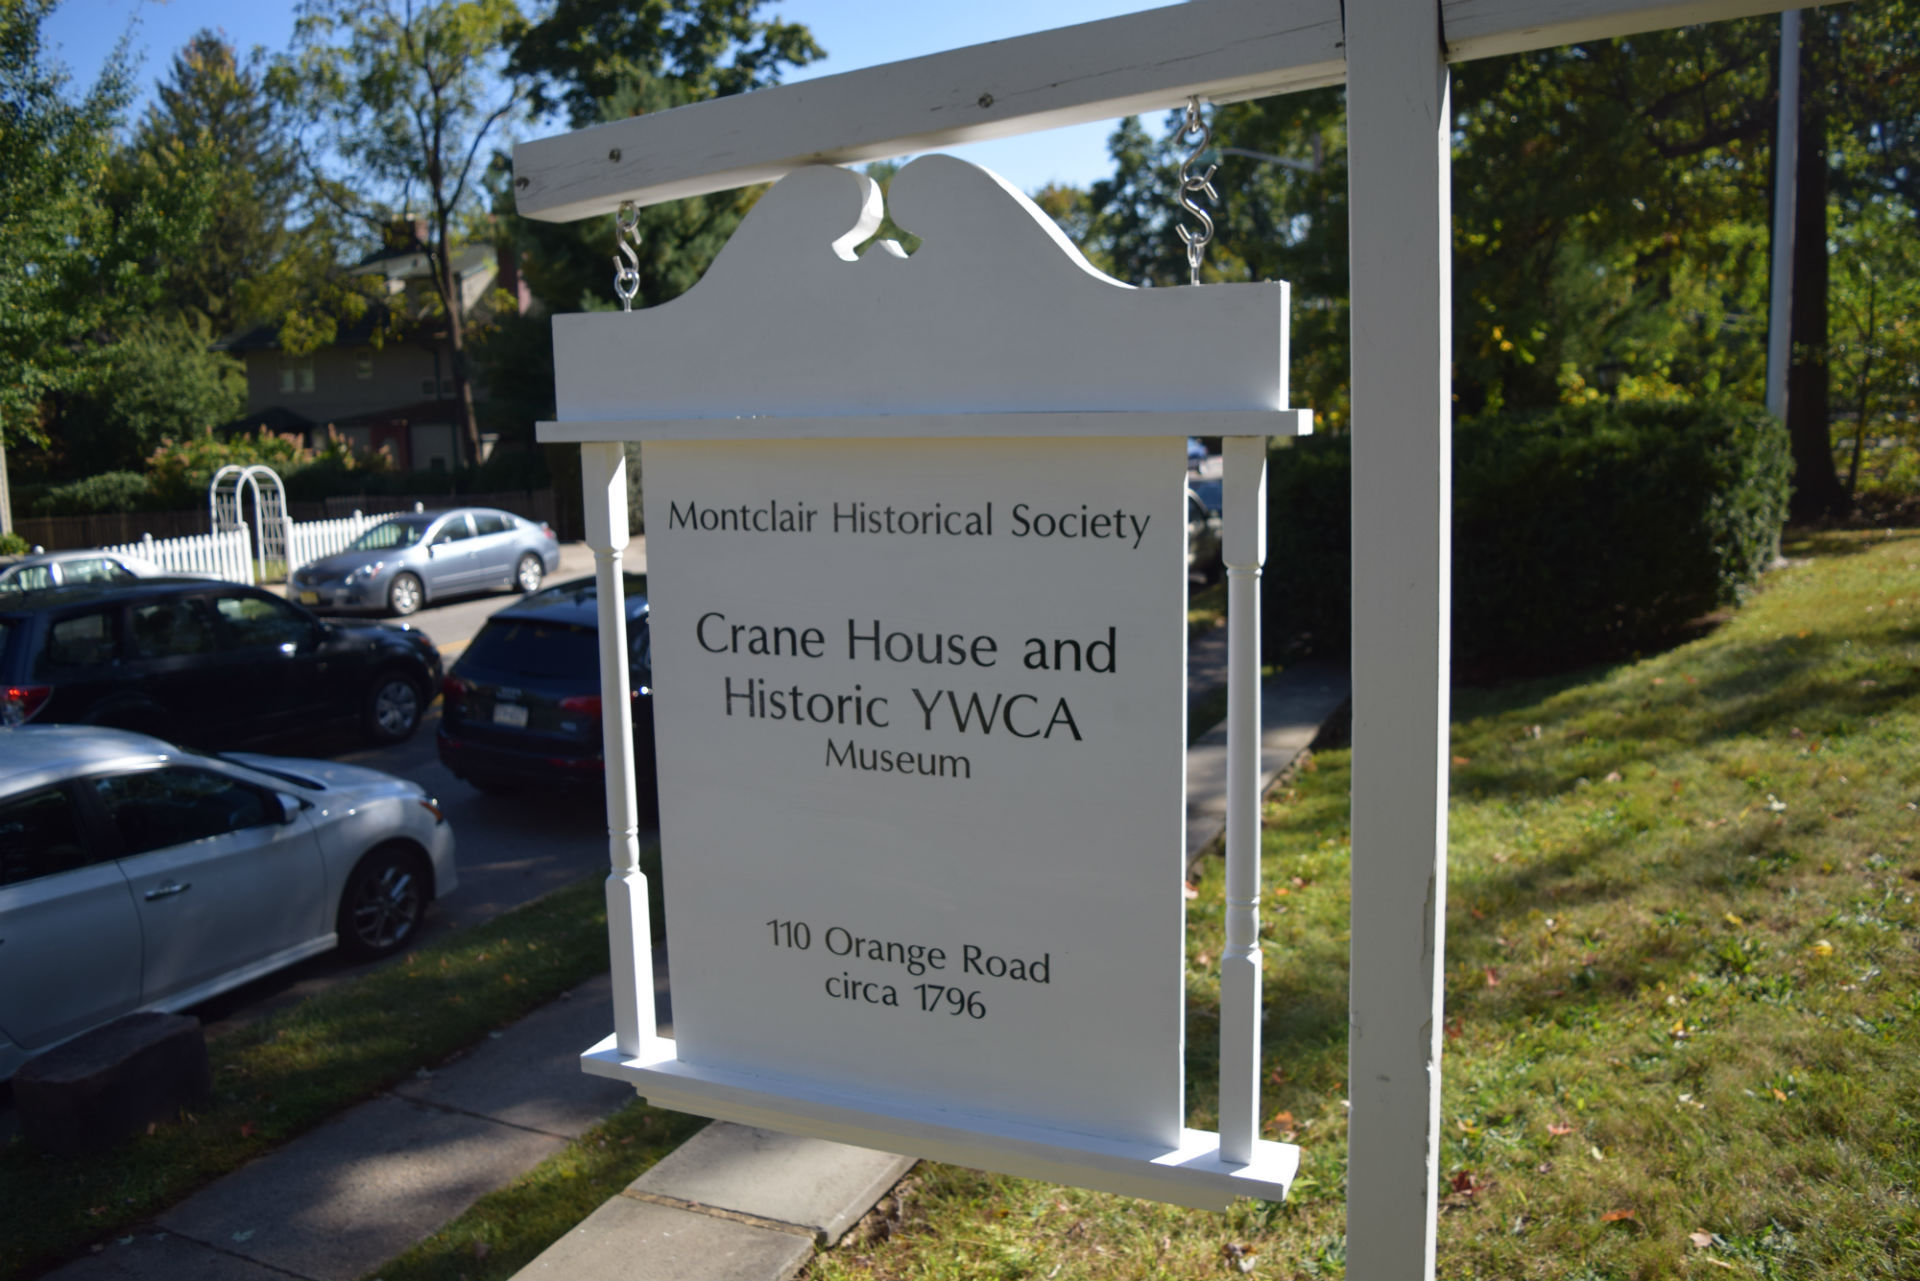 If Walls Could Talk: Montclair's Historic Crane House Reopens After Renovations